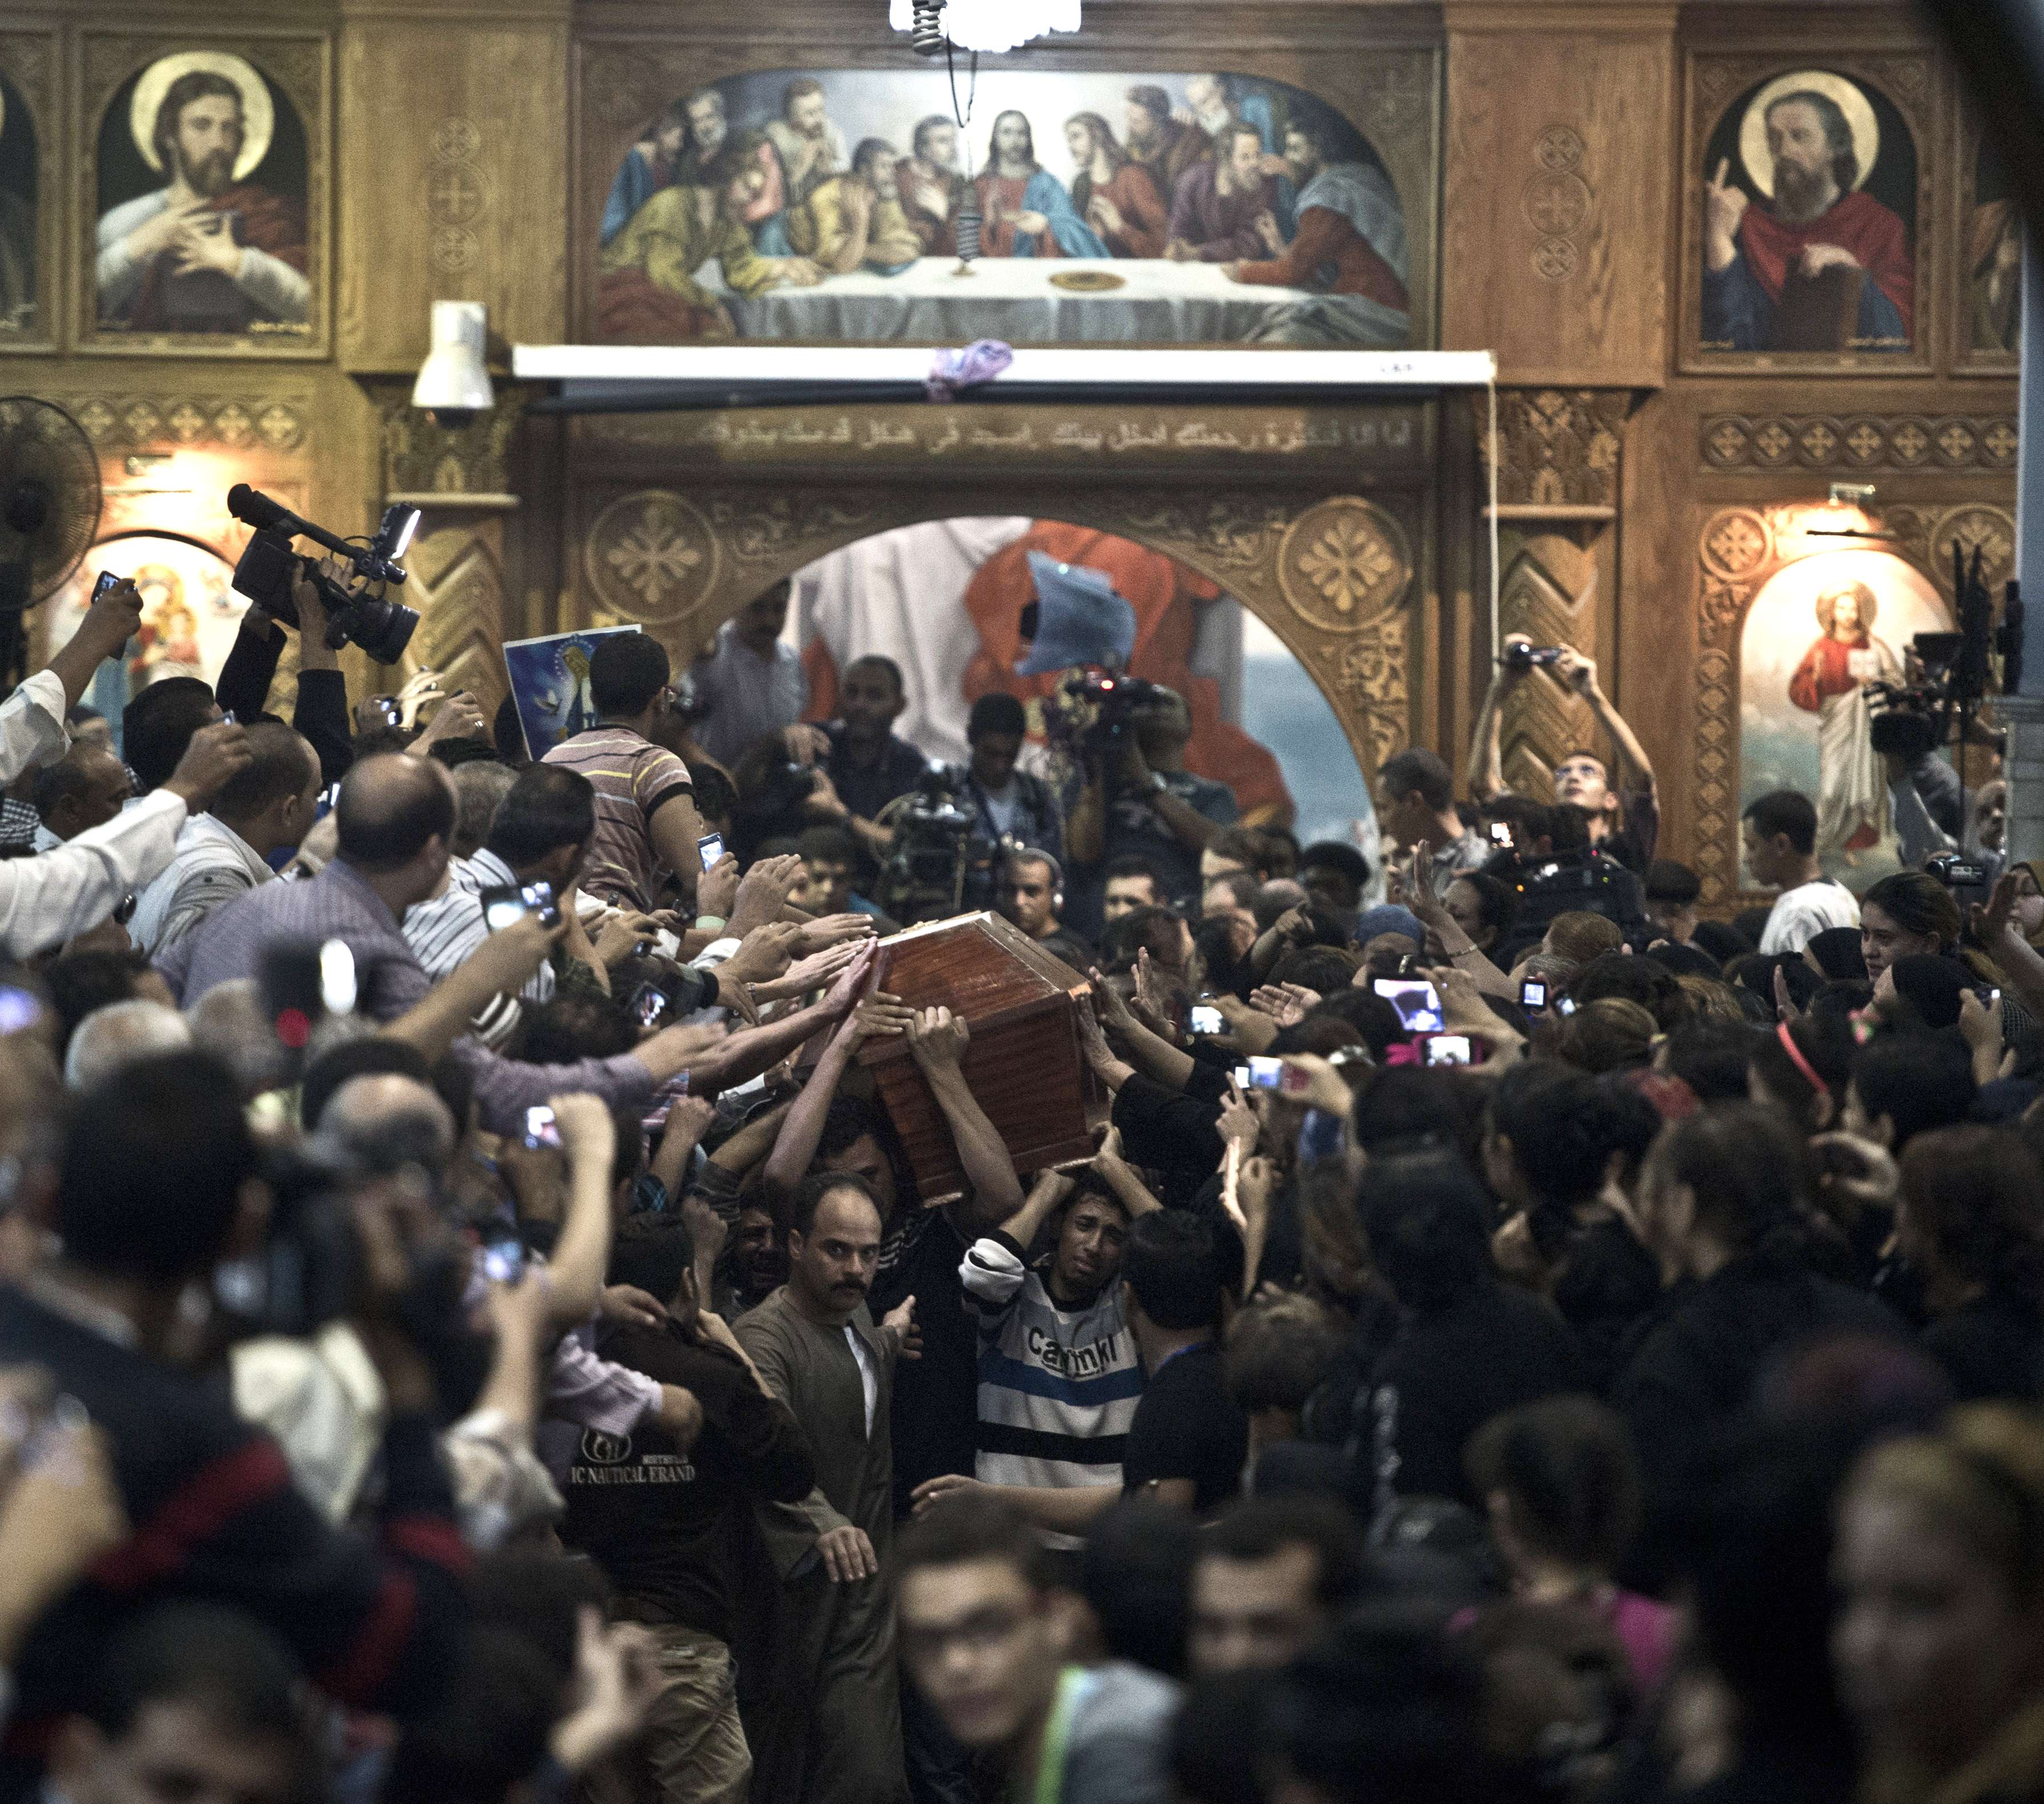 Egyptian Copts carry one of four coffins down the aisle of the Virgin Mary Coptic Christian church in Al-Warraq, Cairo, on 21 October 2013, as thousands attend the funeral of the victims, gunned down as they attended a wedding the previous evening at the same church. (AFP PHOTO / KHALED DESOUKI)